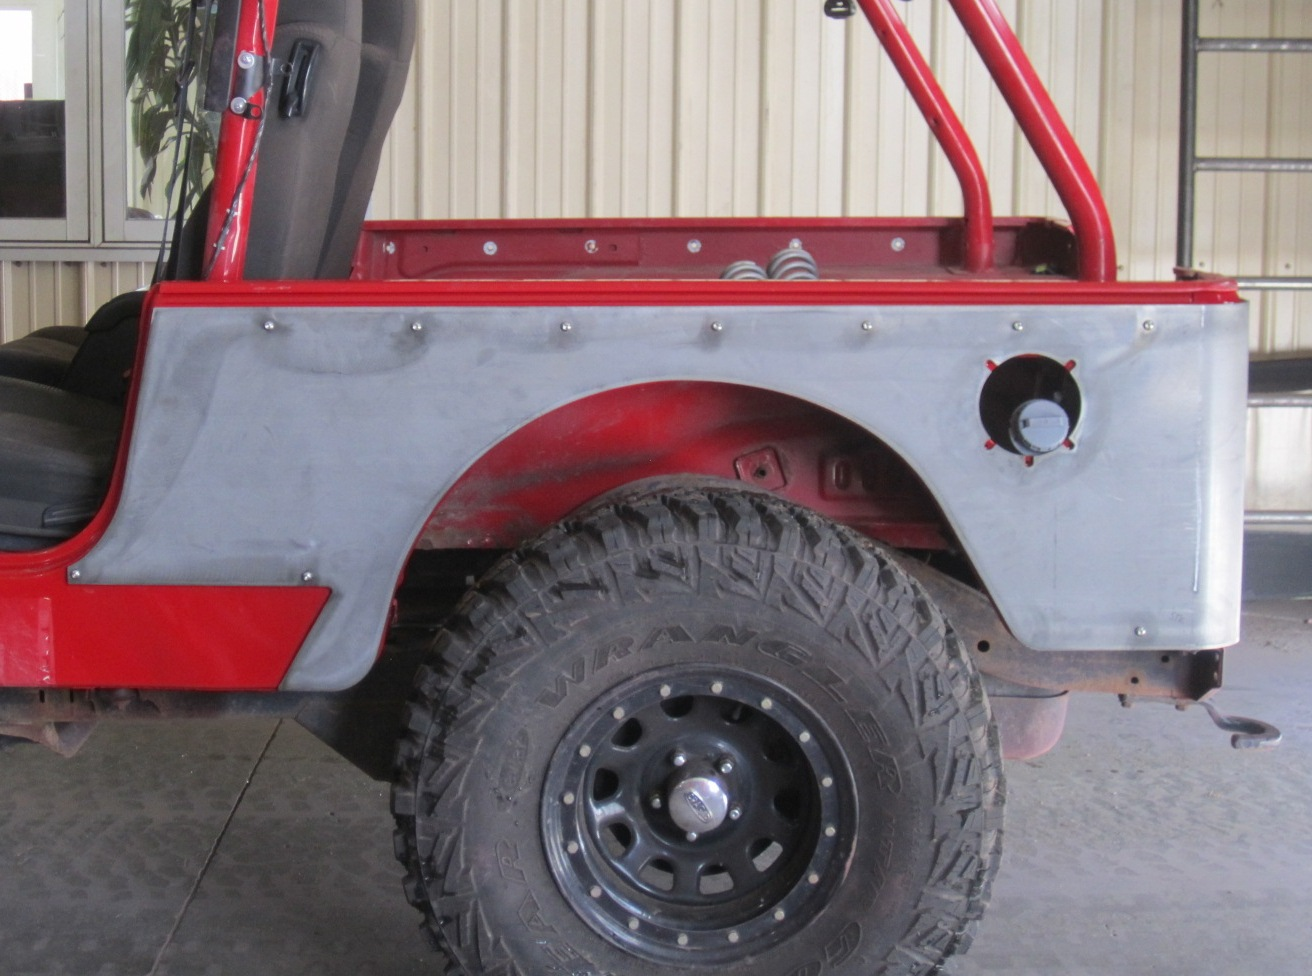 Jeep Lj Fender Flares W Corner Guards 3 Inch Flare 04 06 Wrangler Lj Tnt Customs Jeep Aftermarket Parts Tnt Customs